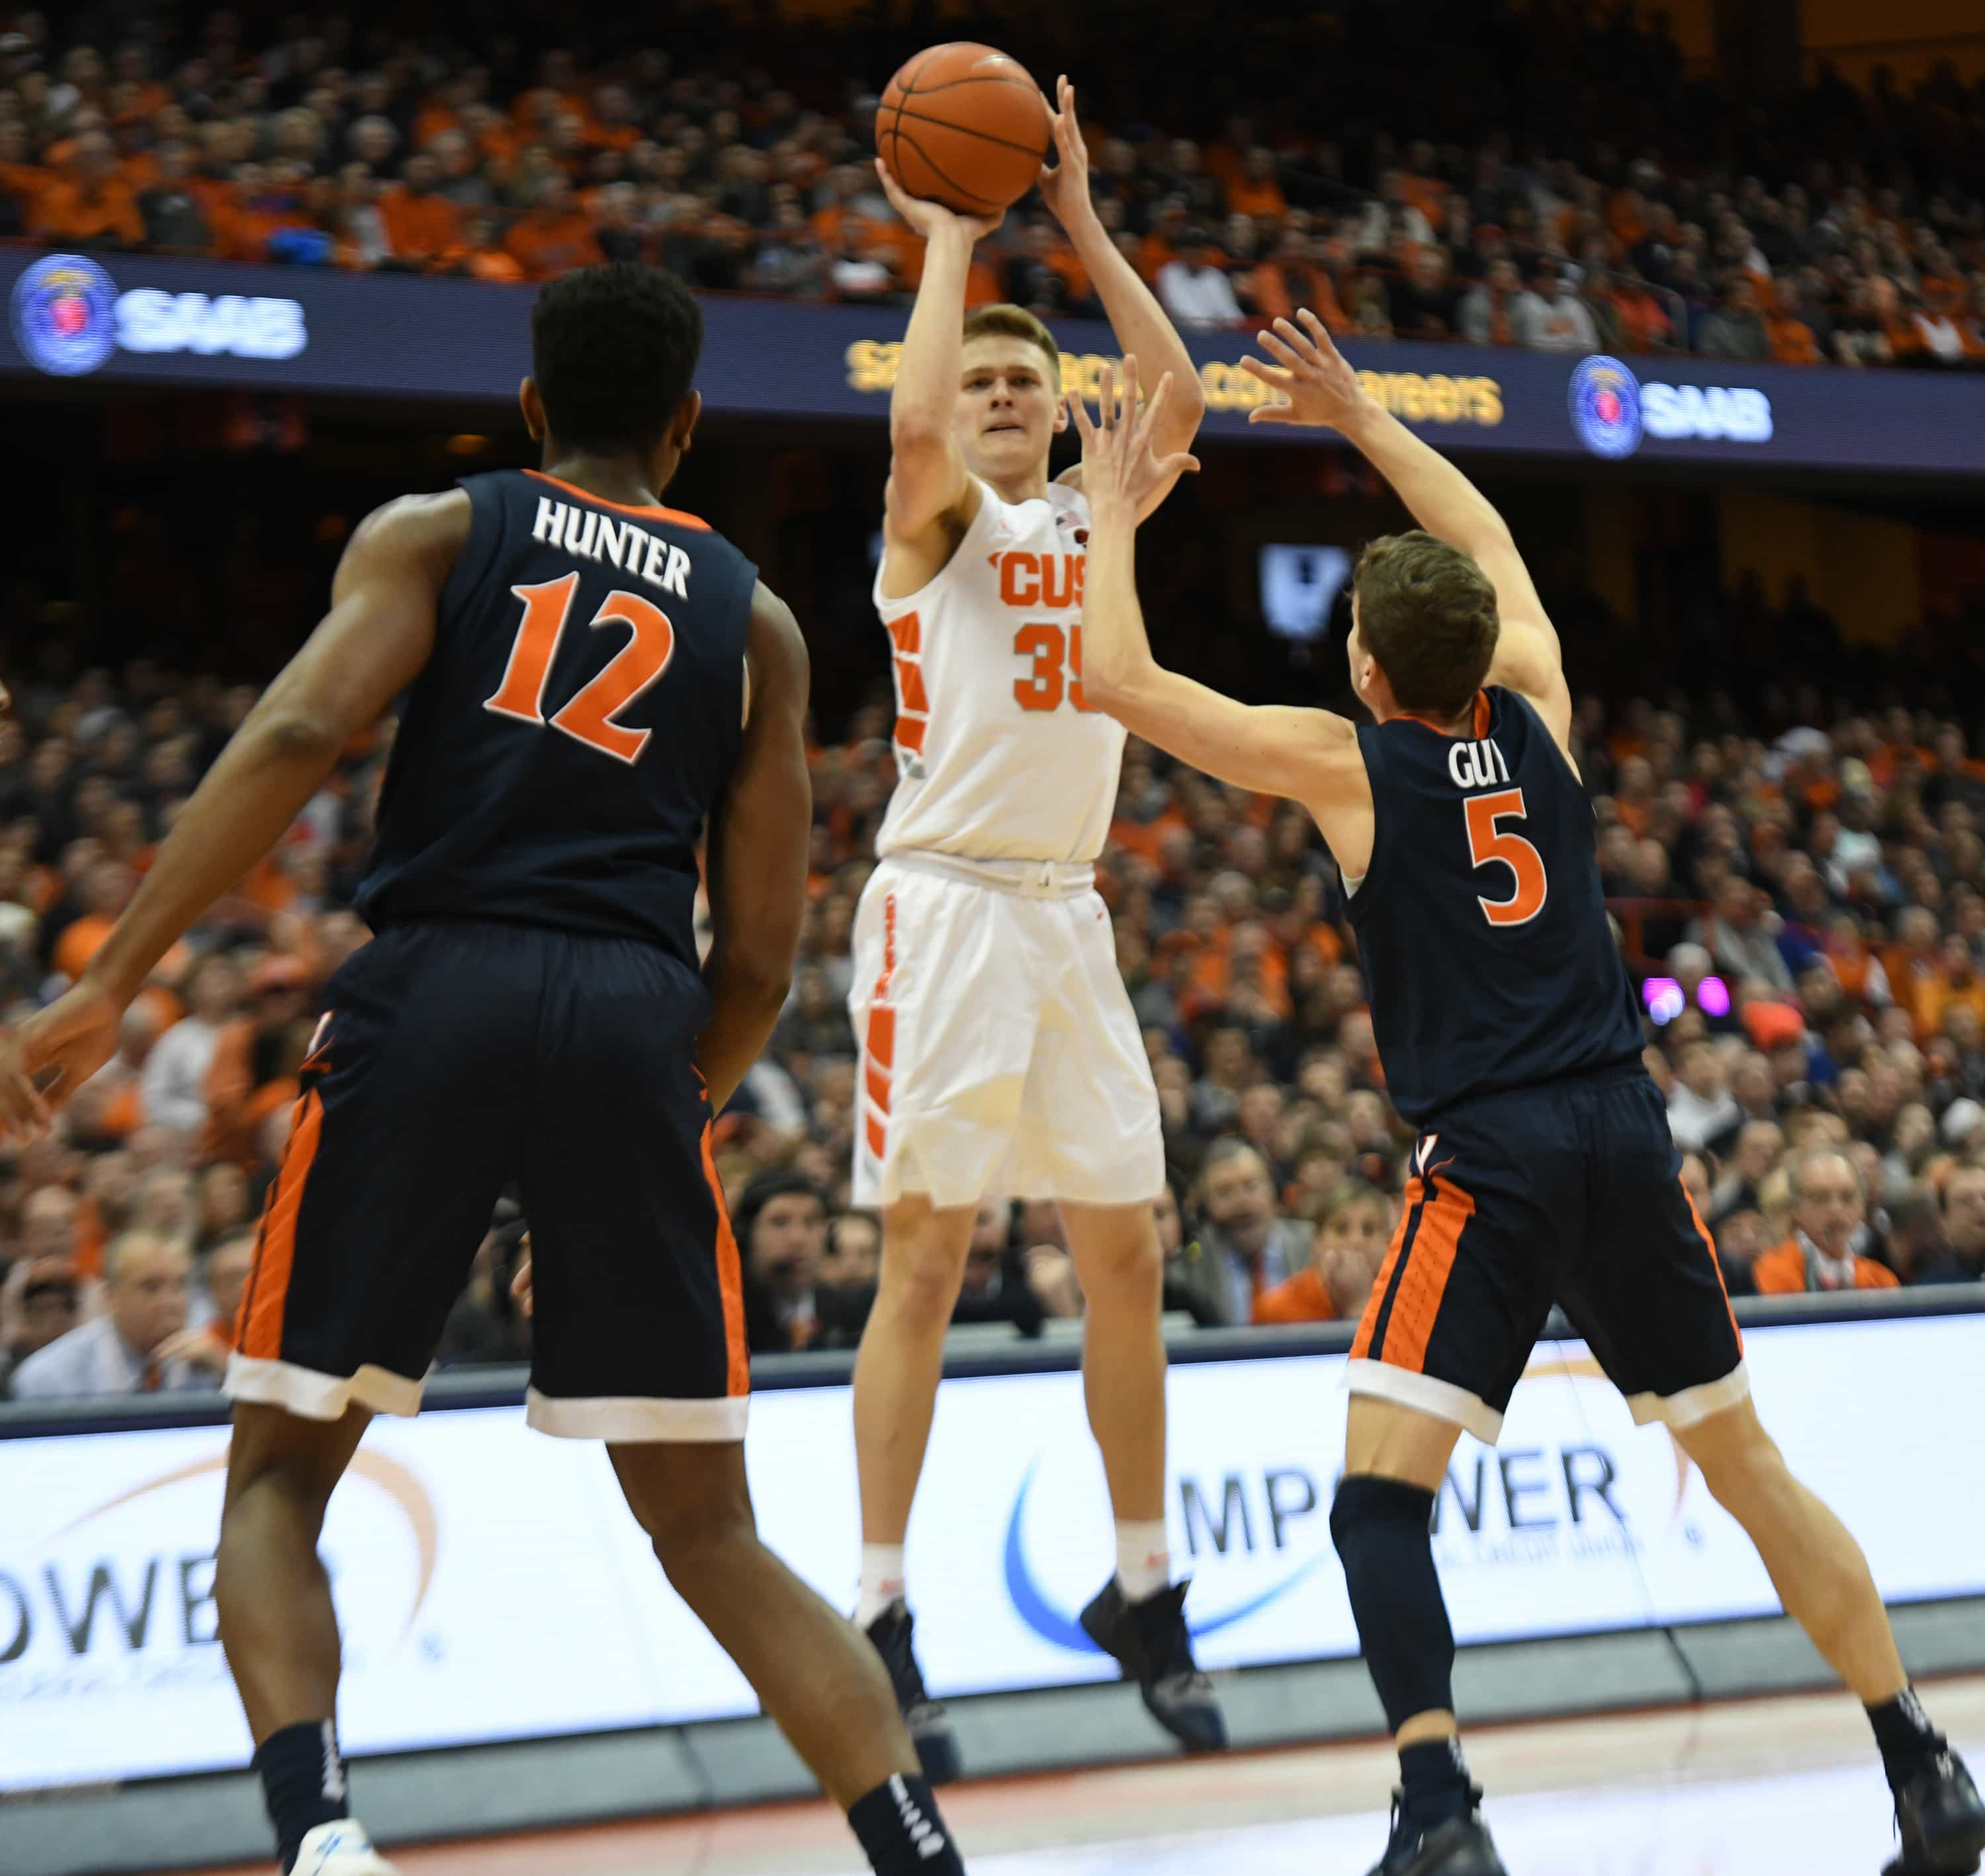 Buddy Boeheim of Syracuse Men's Basketball vs. Virginia